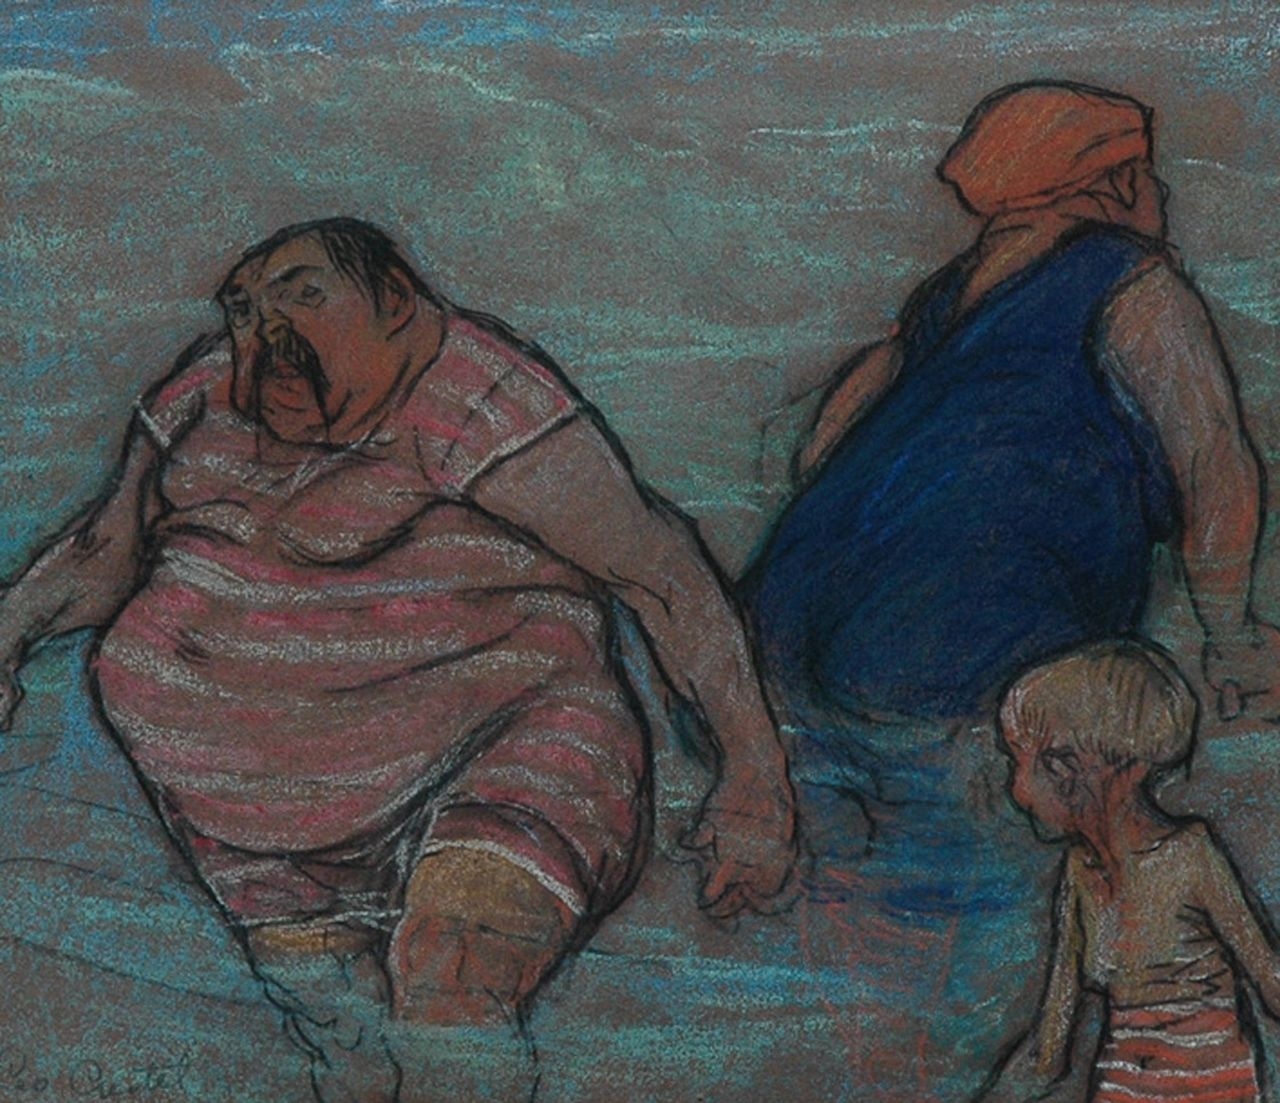 Gestel L.  | Leendert 'Leo' Gestel, Family taking a bath, charcoal and pastel on paper 20.9 x 24.2 cm, signed l.l.